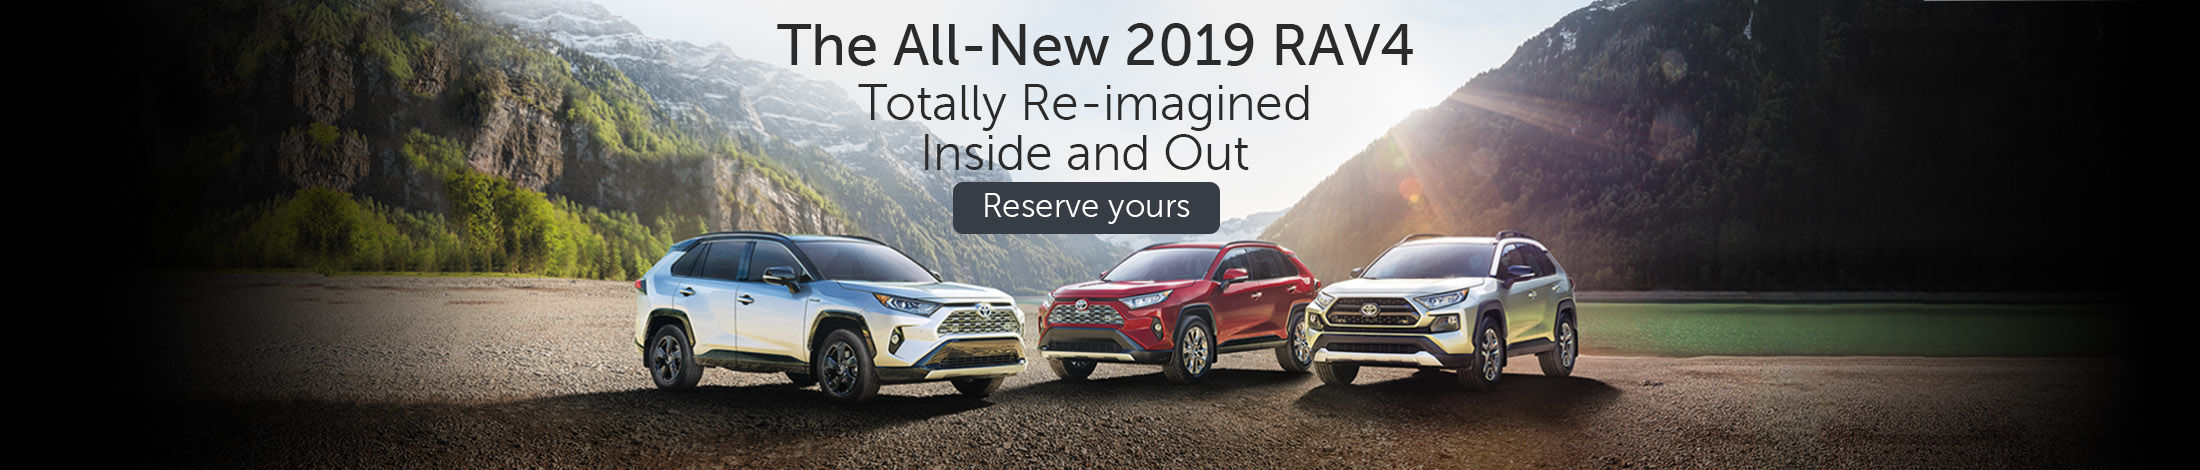 The all-new 2019 RAV4